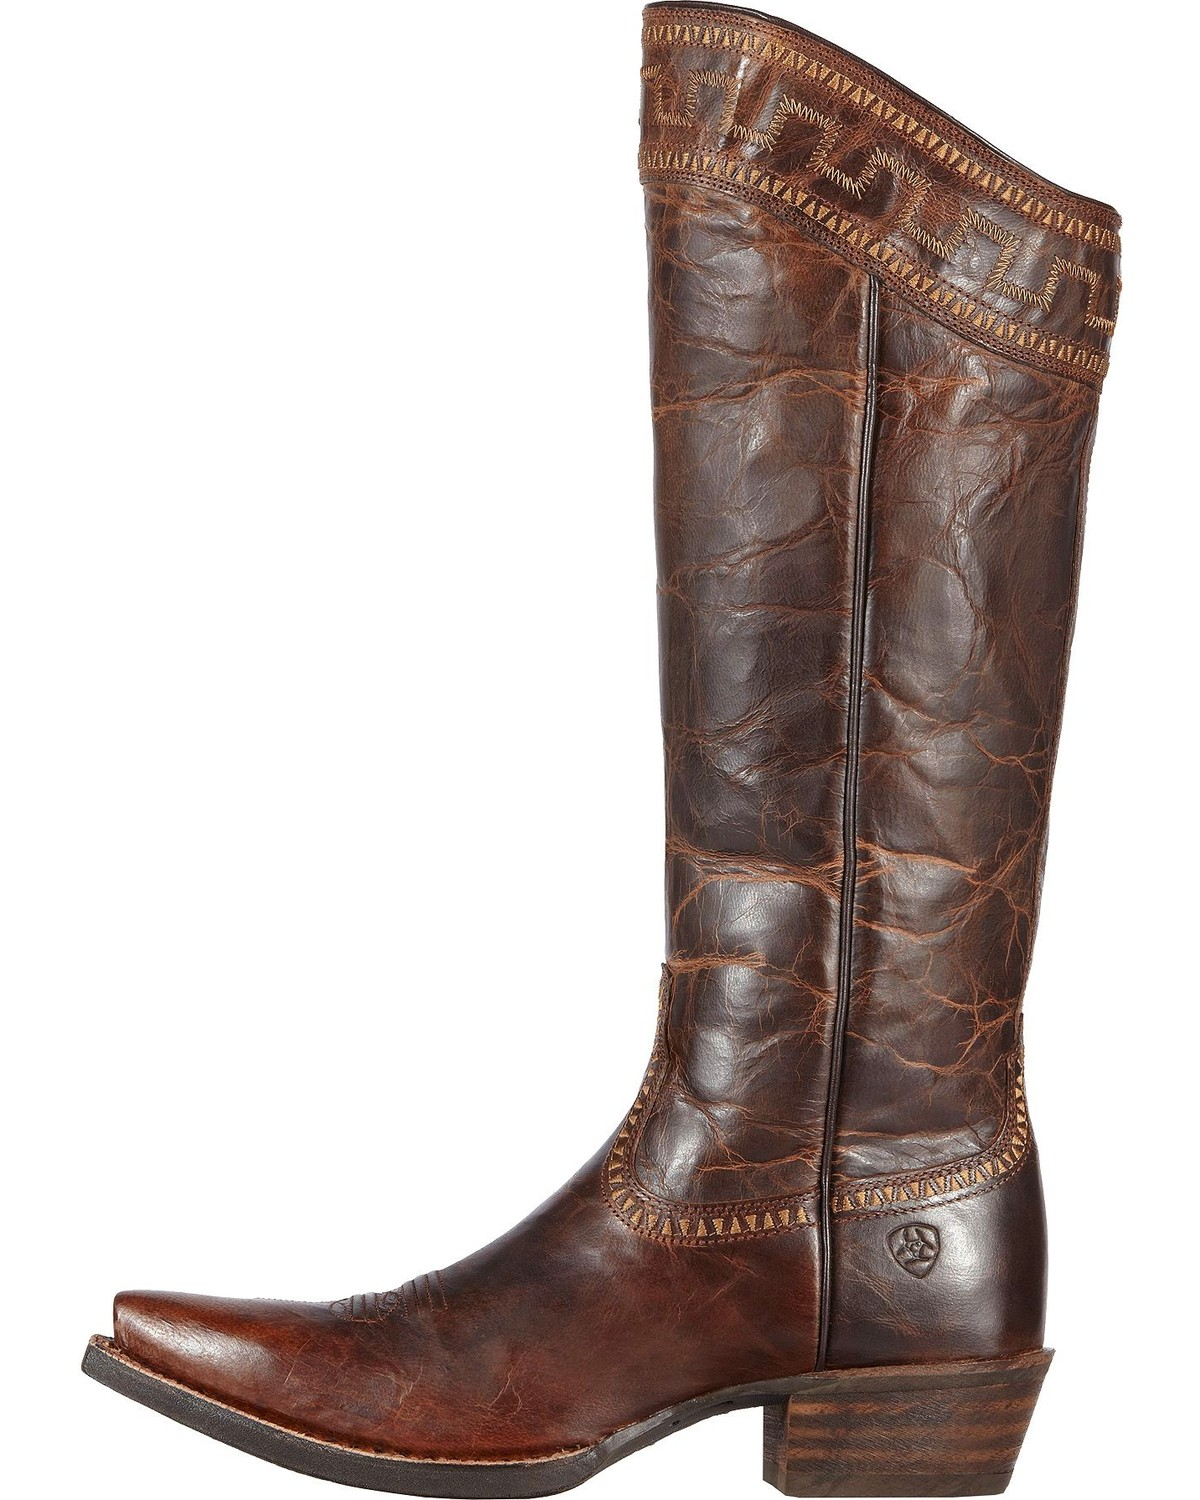 "Ariat Sahara 15"" Cowgirl Riding Boots - Snip Toe 